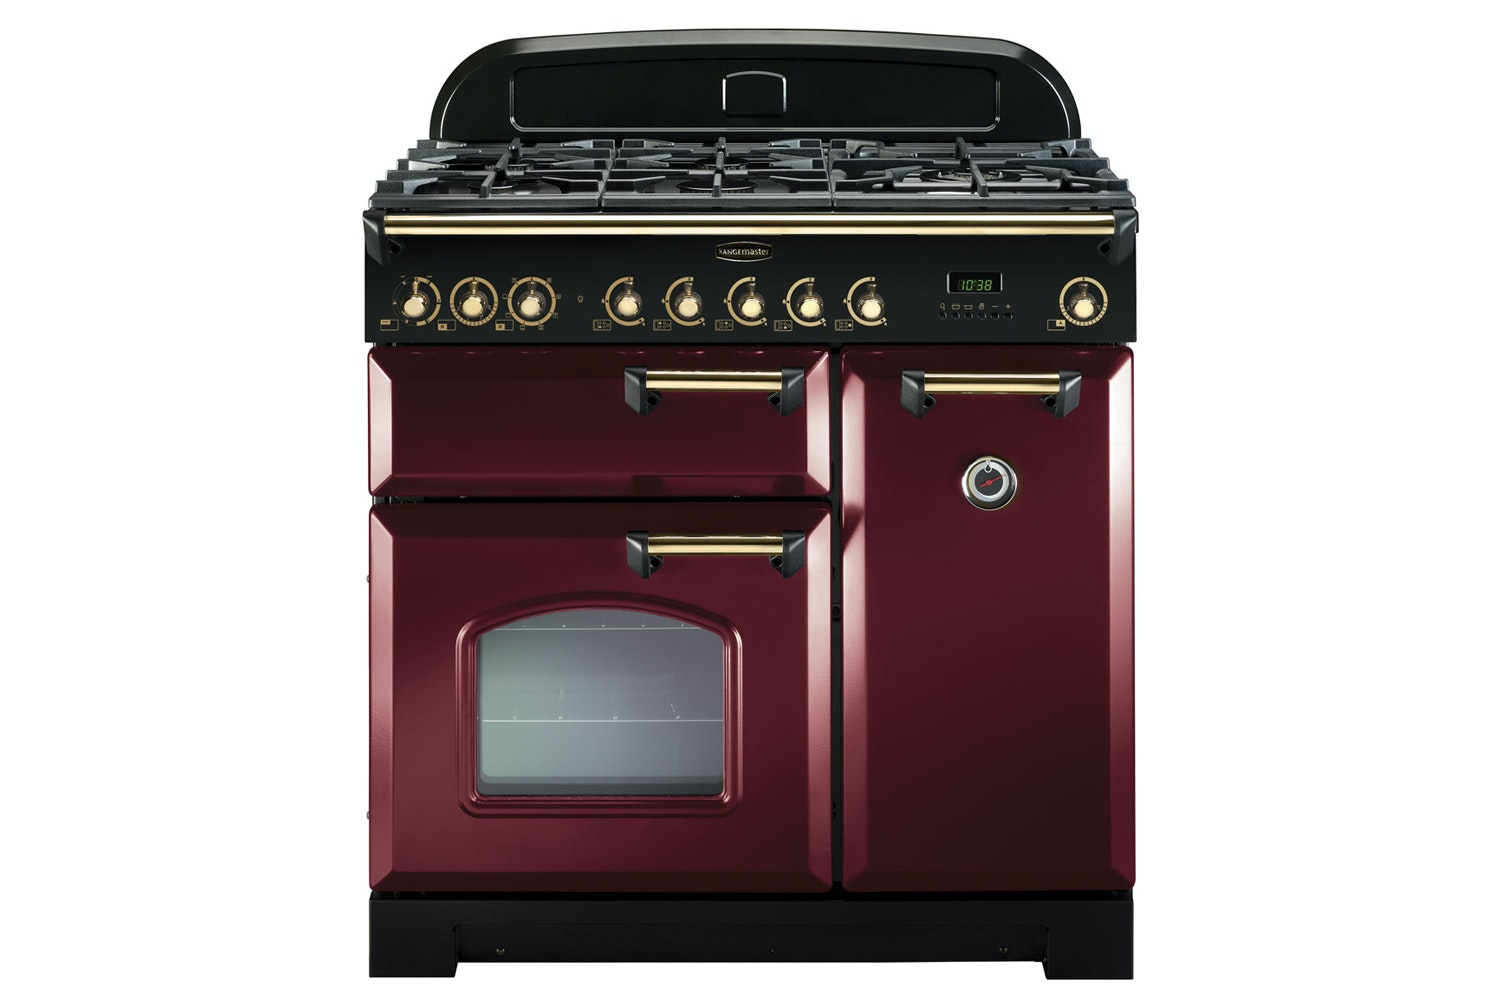 Rangemaster Classic Deluxe 90cm Dual Fuel Range Cooker | CDL90DFFCY/B | Cranberry